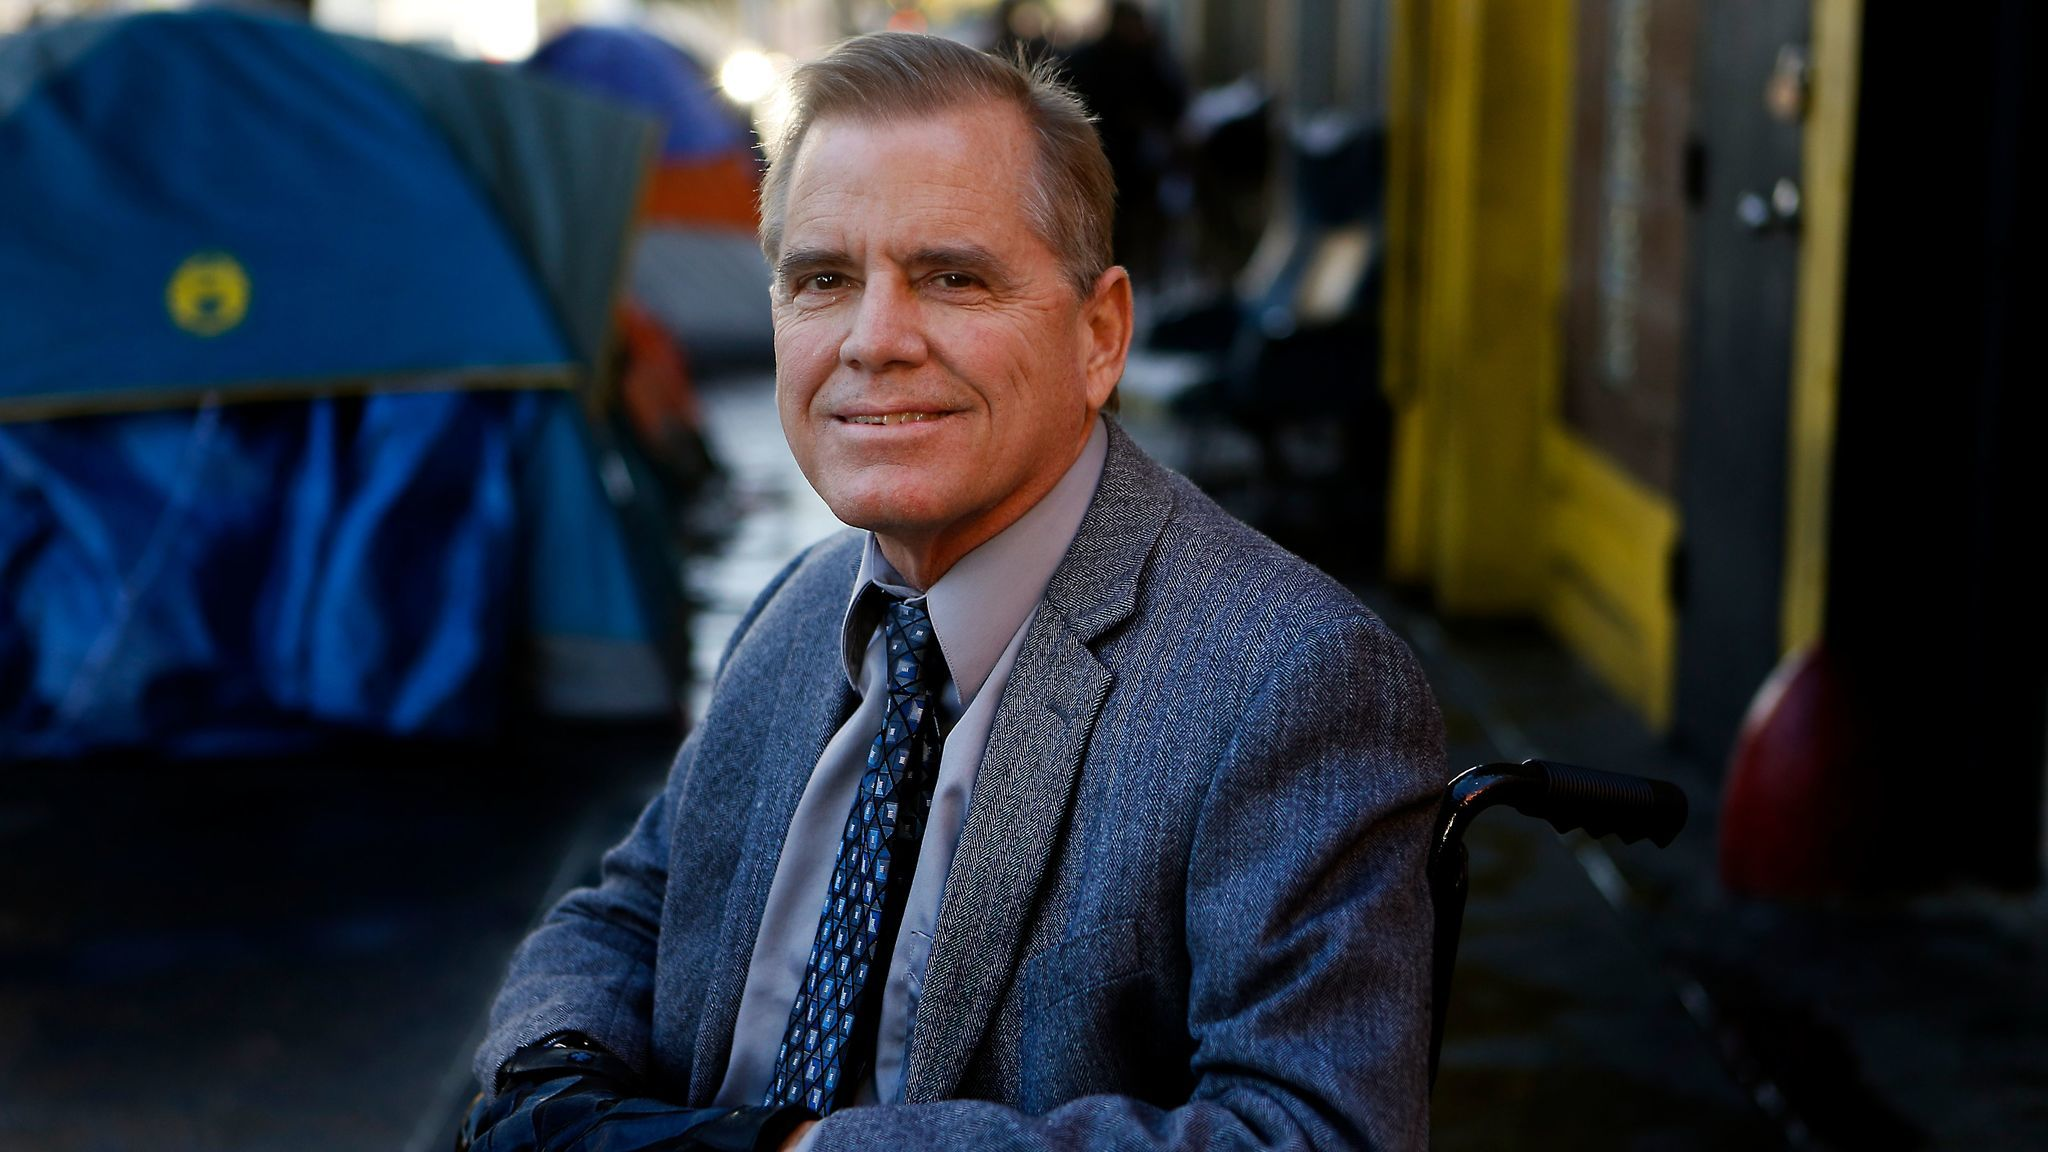 Andy Bales, chief executive of the Union Rescue Mission, says L.A.'s homelessness problem is a